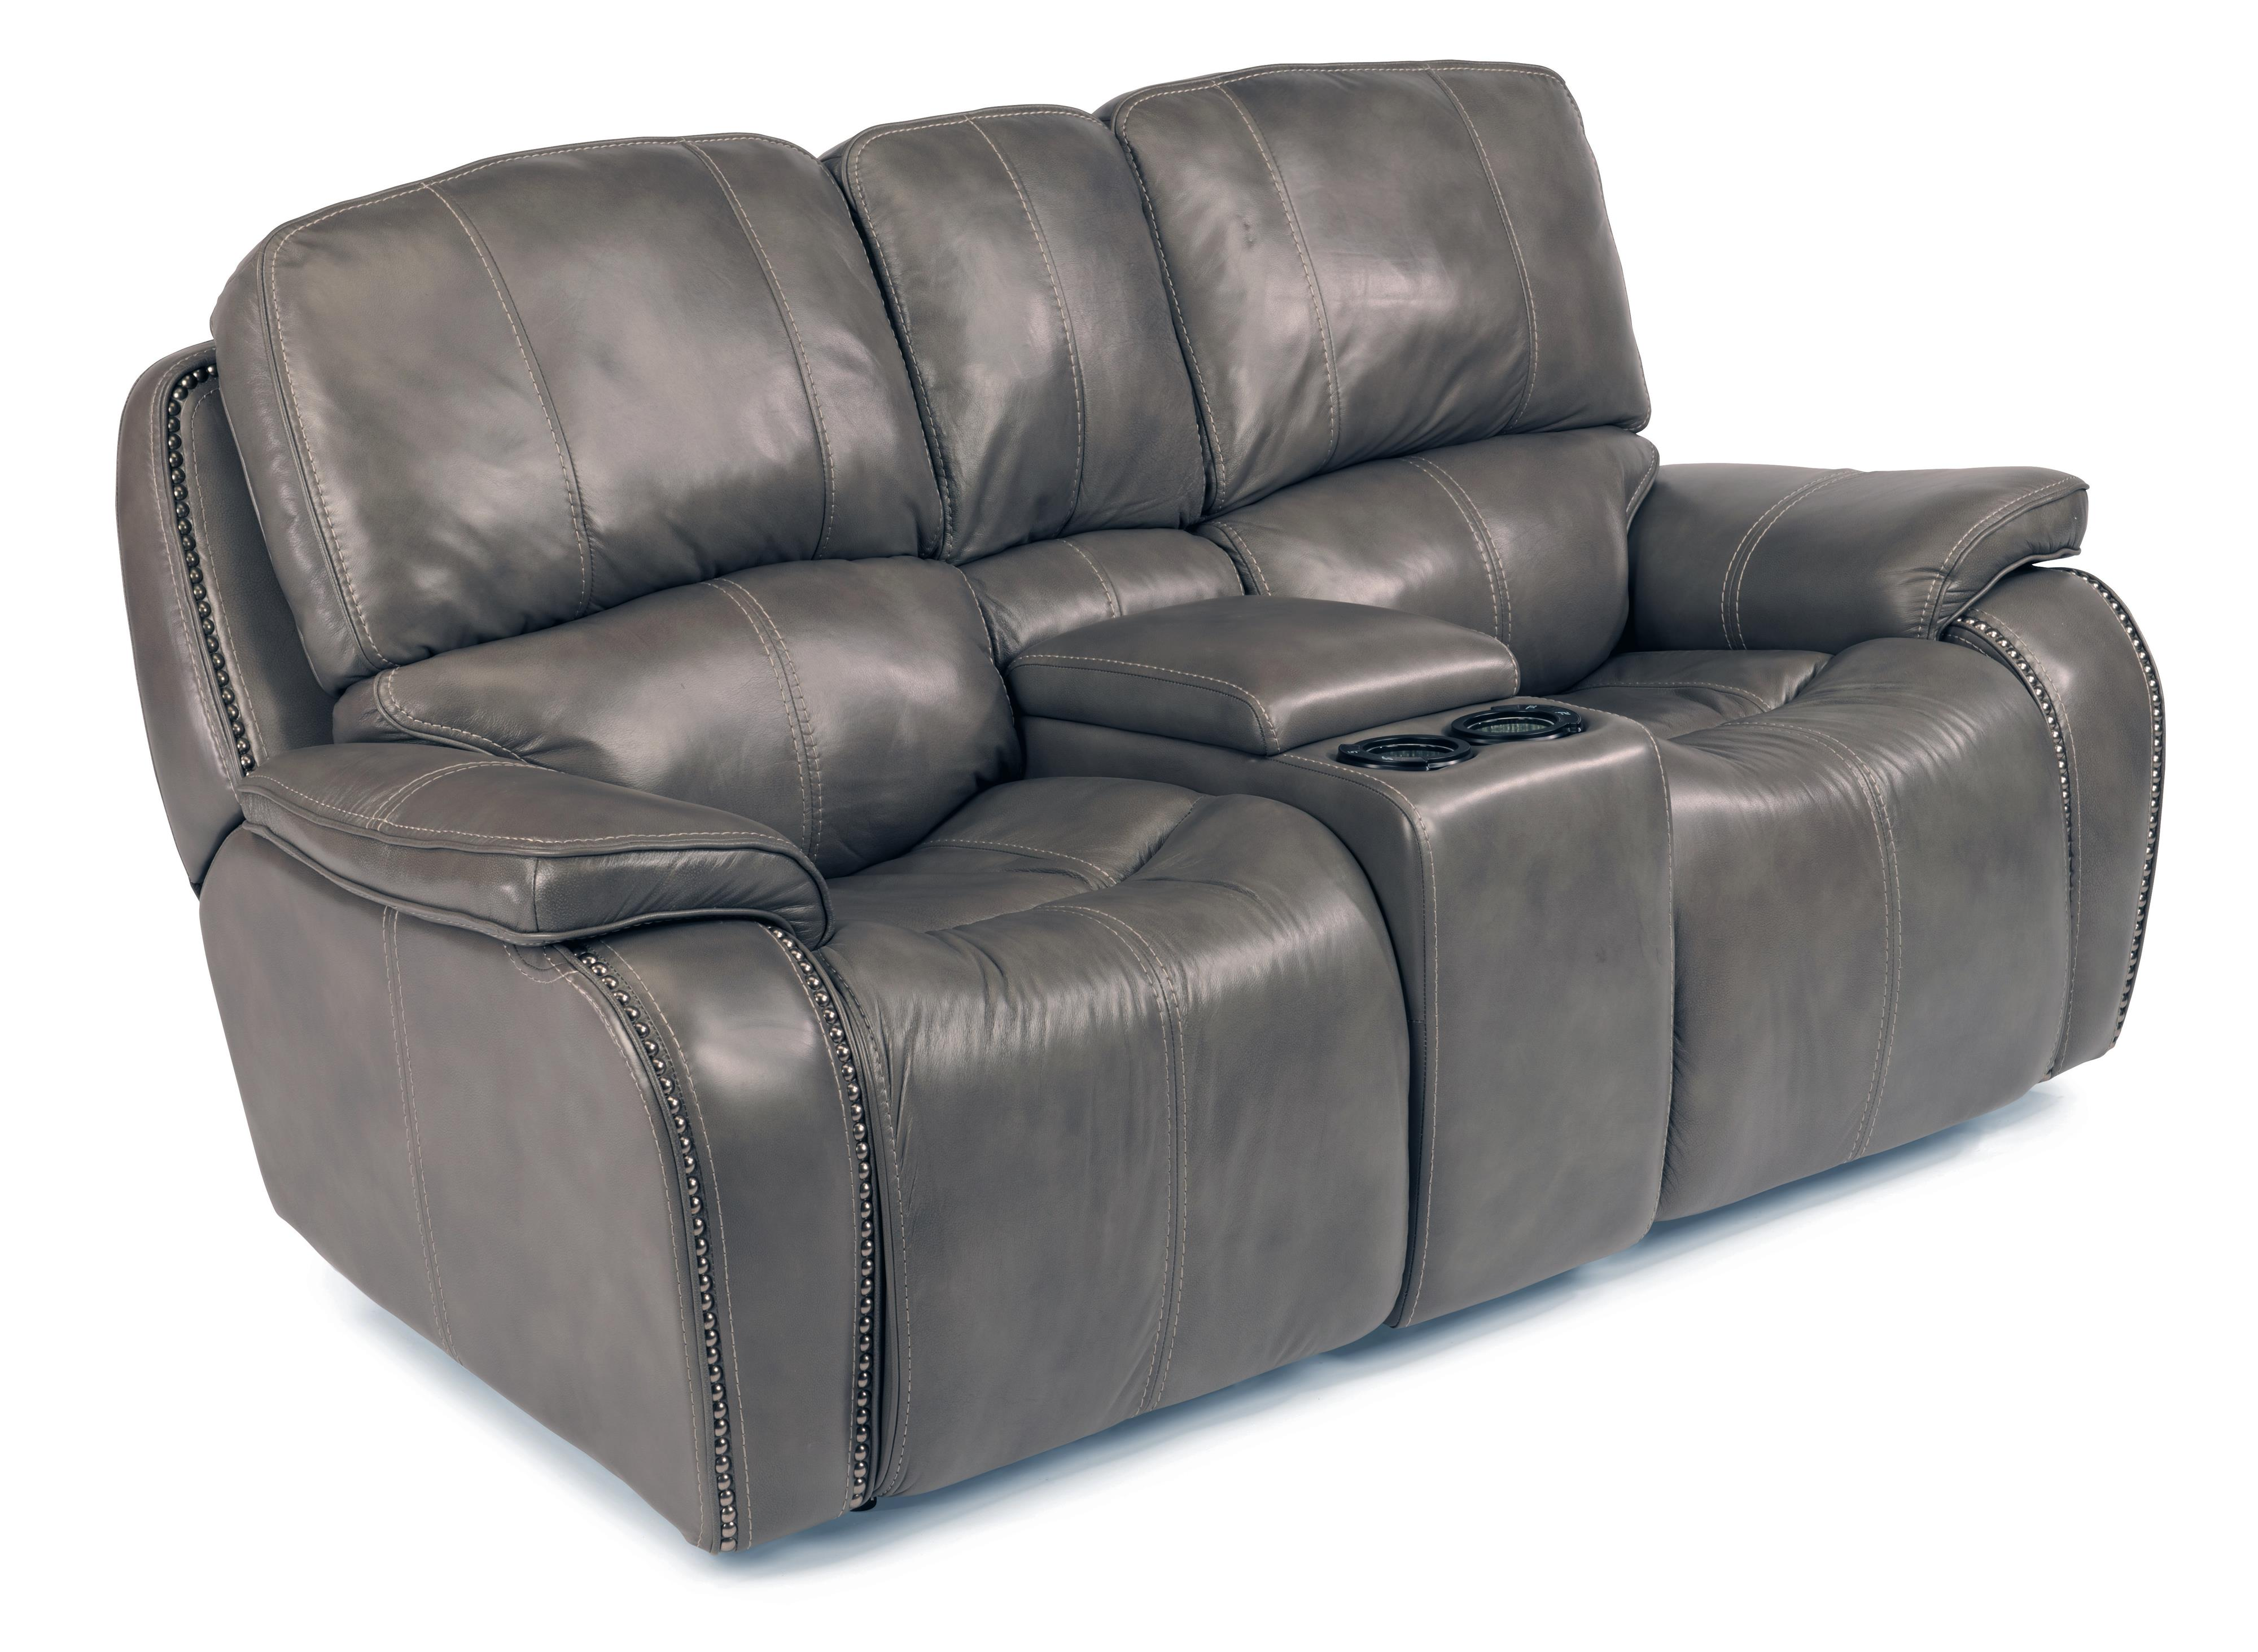 Flexsteel Latitudes-MacKay Power Reclining Loveseat with Console - Item Number: 1617-604P-014-07